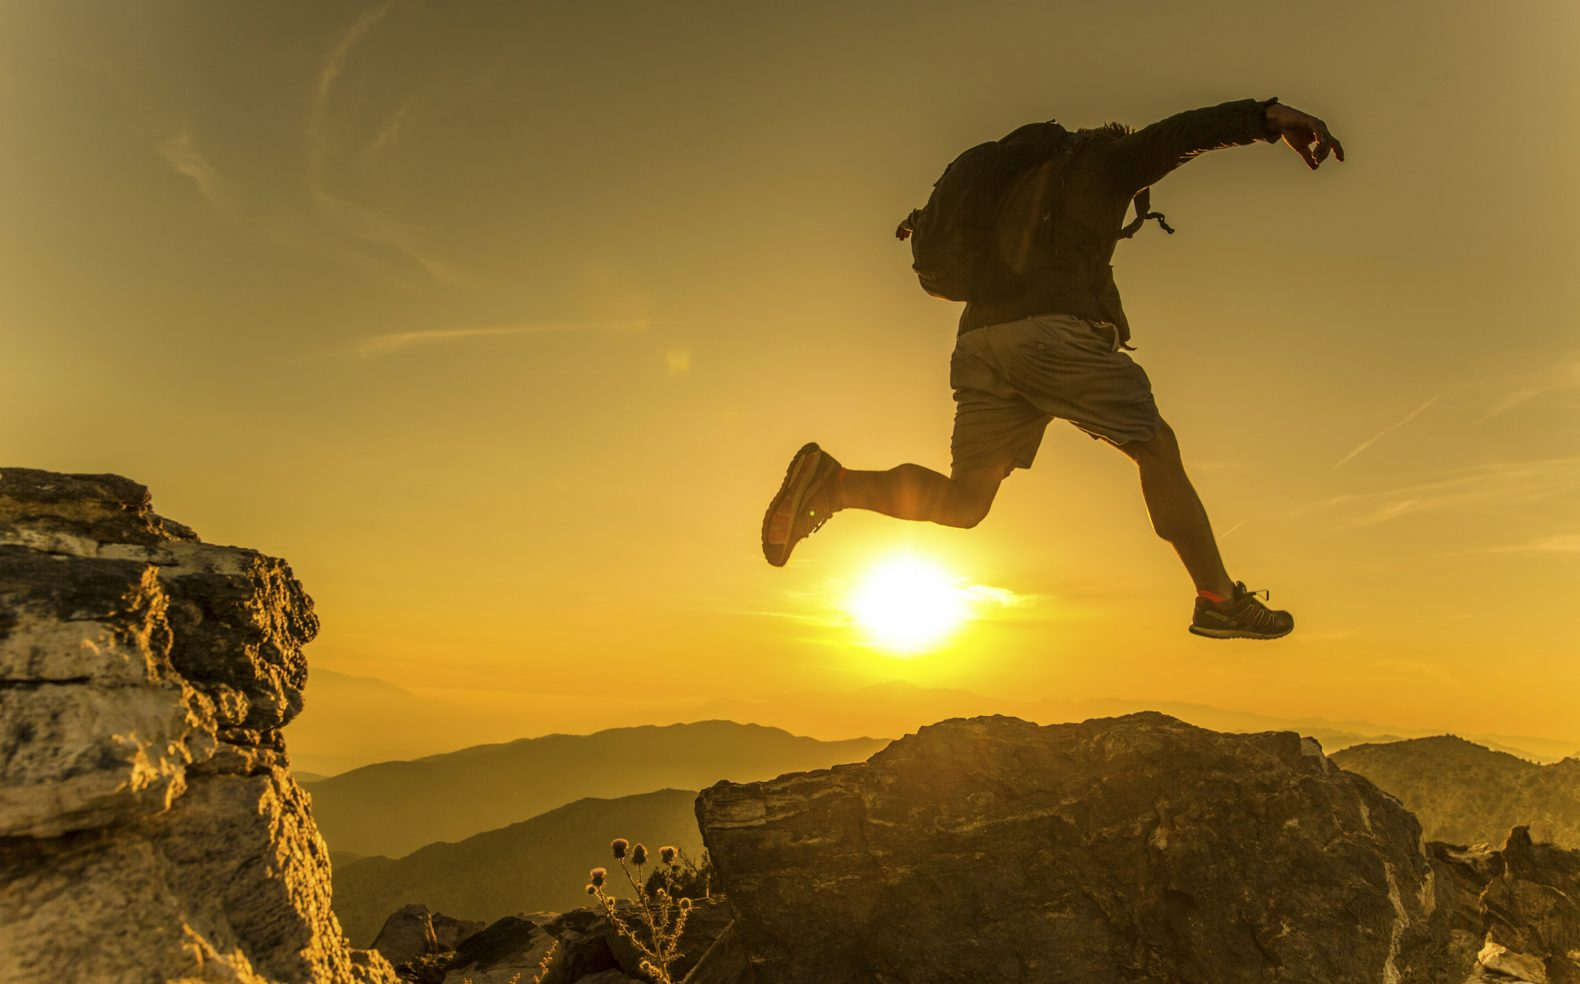 A young man in hiking gear wearing a backpack taking a jump between boulders while climbing in the mountains during sunset.